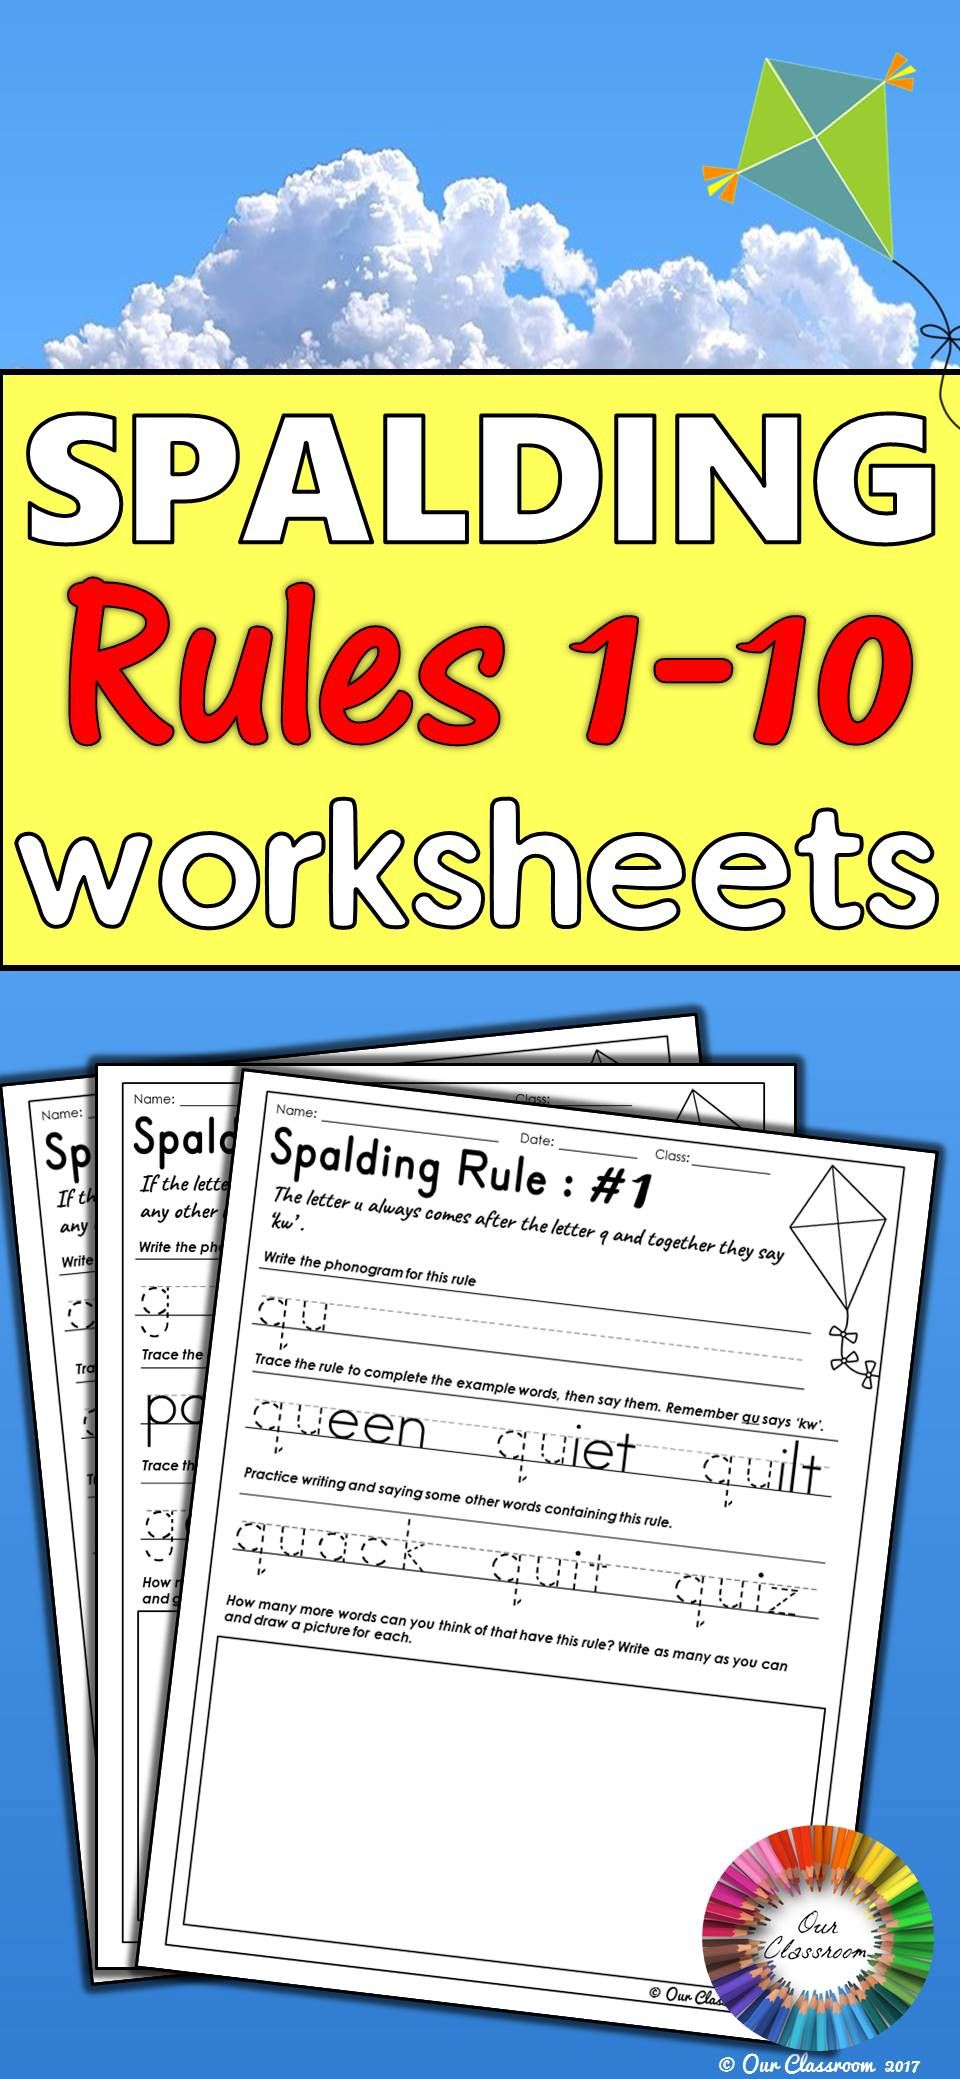 Area Of Parallelogram Worksheets Excel Spalding Rules  Worksheets  Homework Sheet Homework And  Jim Rohn Goal Setting Worksheet Word with Worksheets For 2nd Grade Pdf This Product Contains An Individual Worksheet For Each Of The Spalding Surface Area Worksheets Grade 8 Word